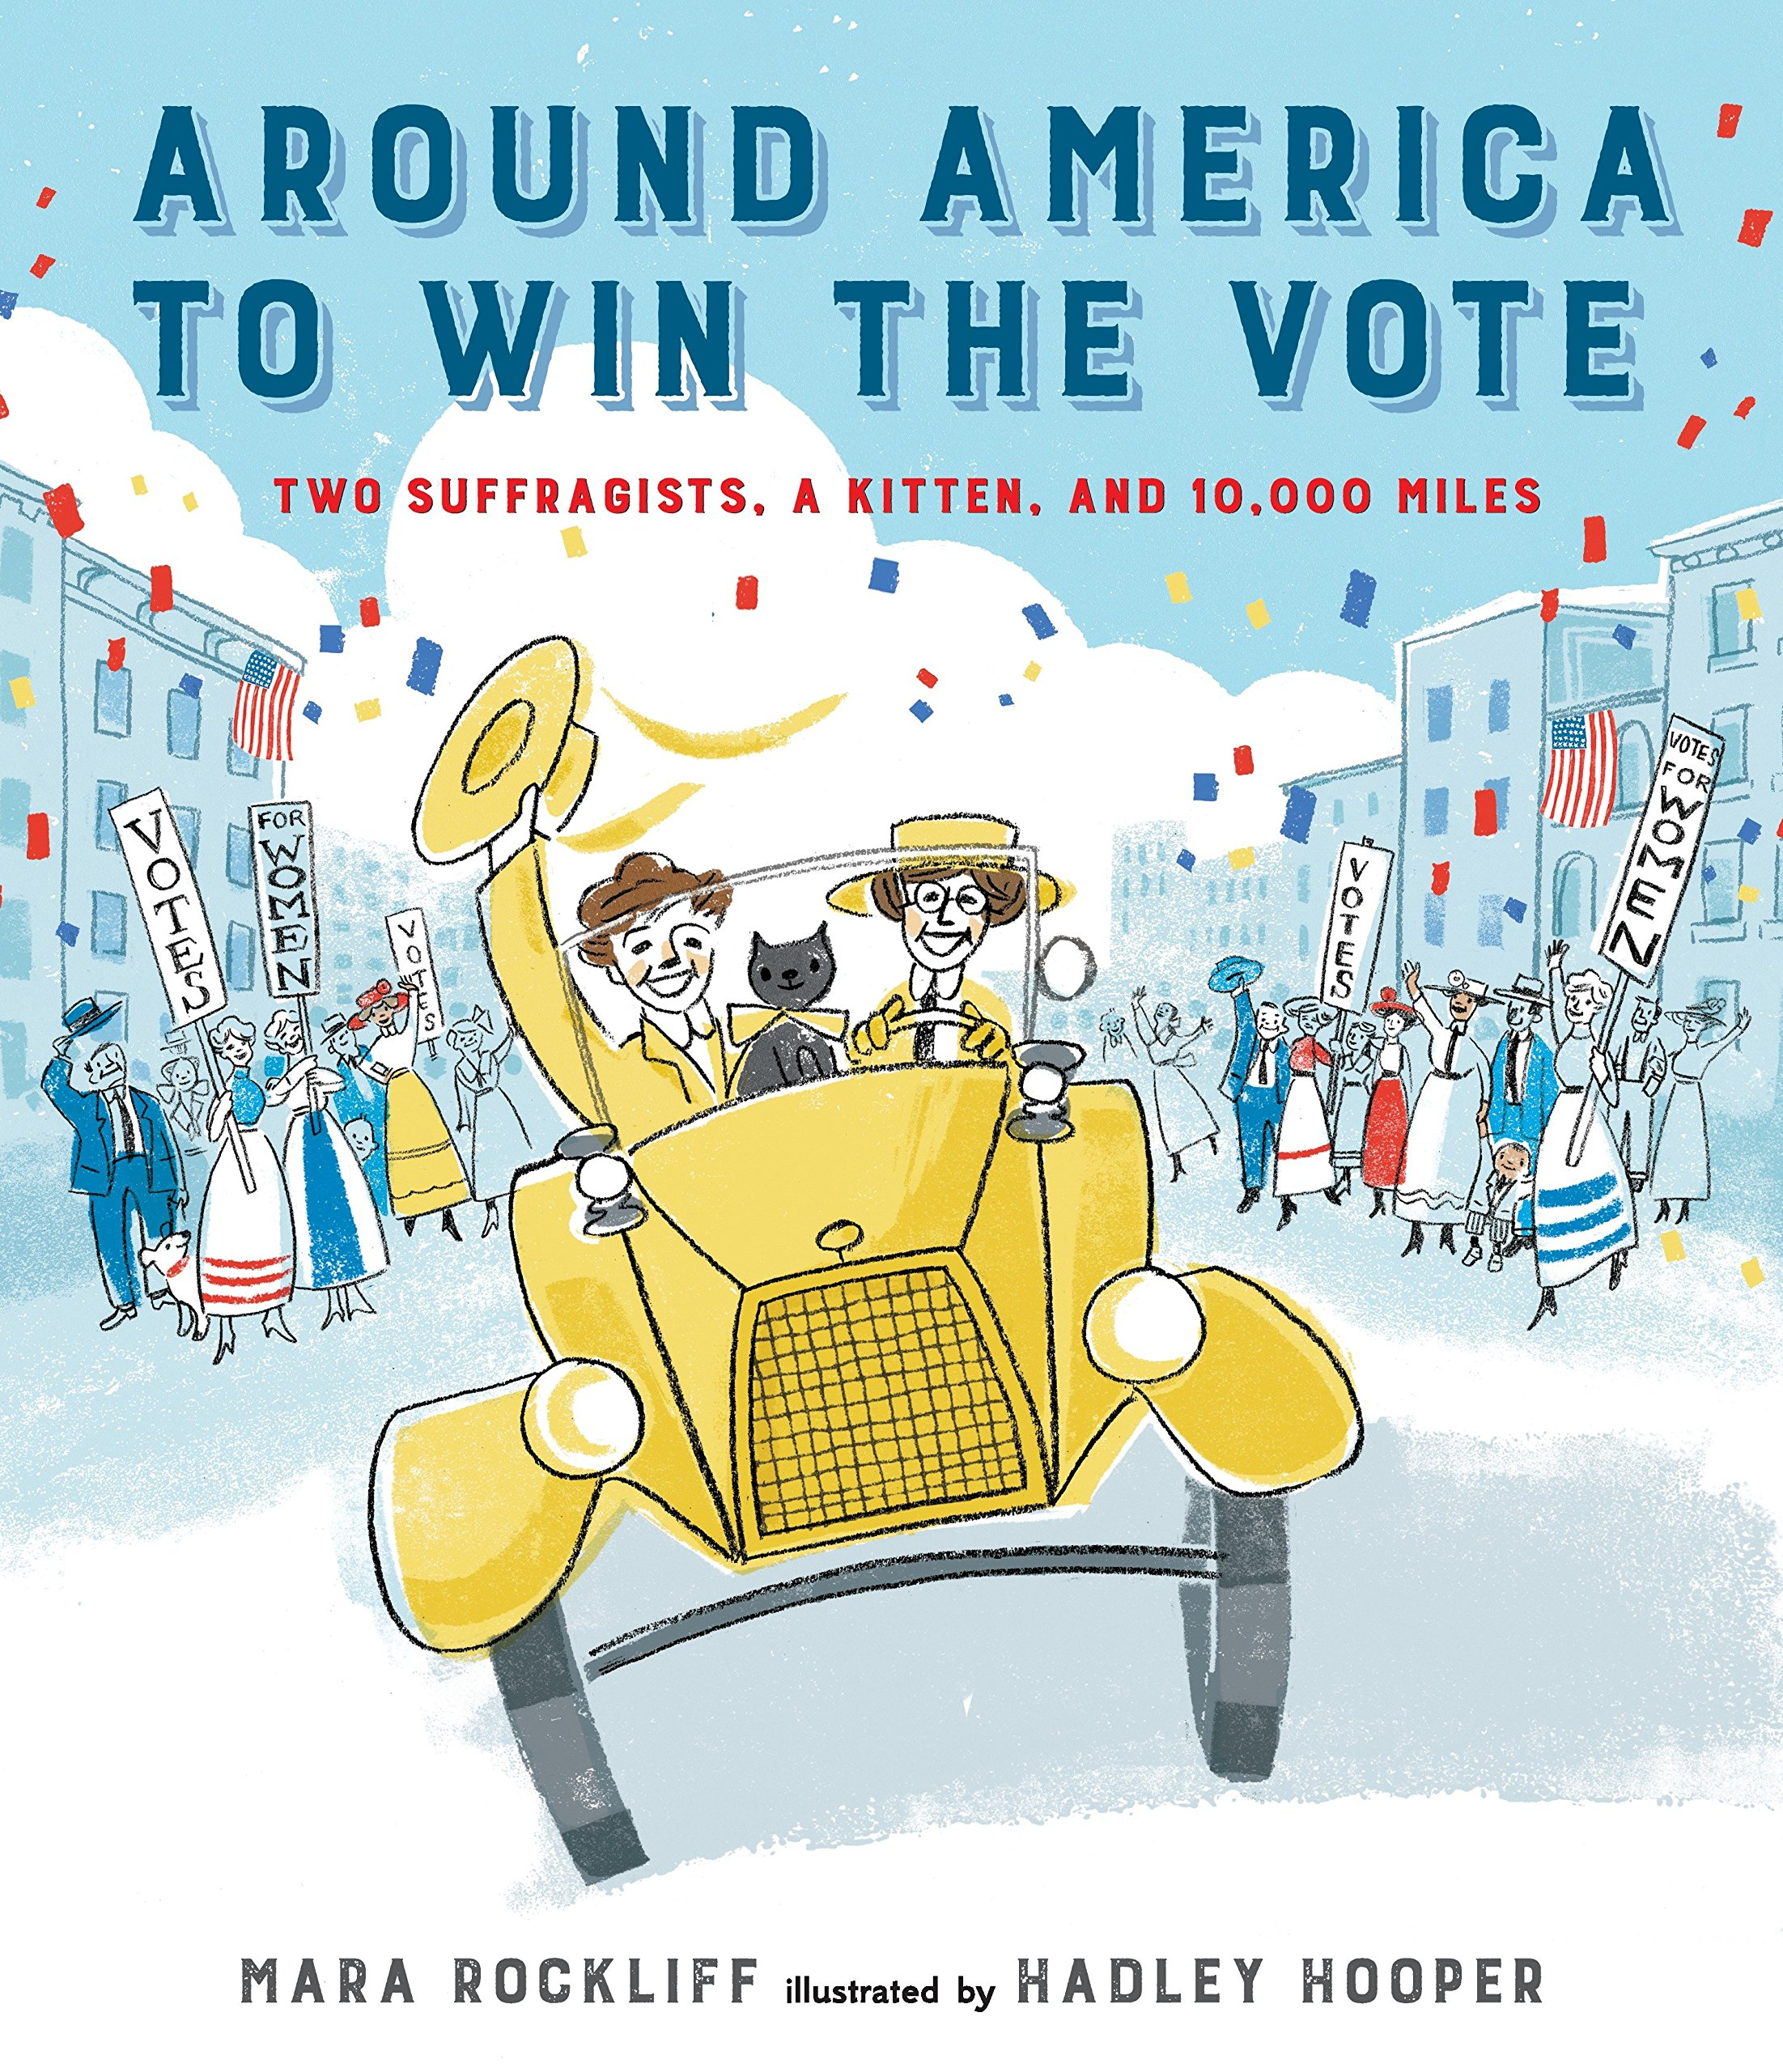 Around America to Win the Vote: Two Suffragists, a Kitten, and 10,000 Miles_Books About Strong Women